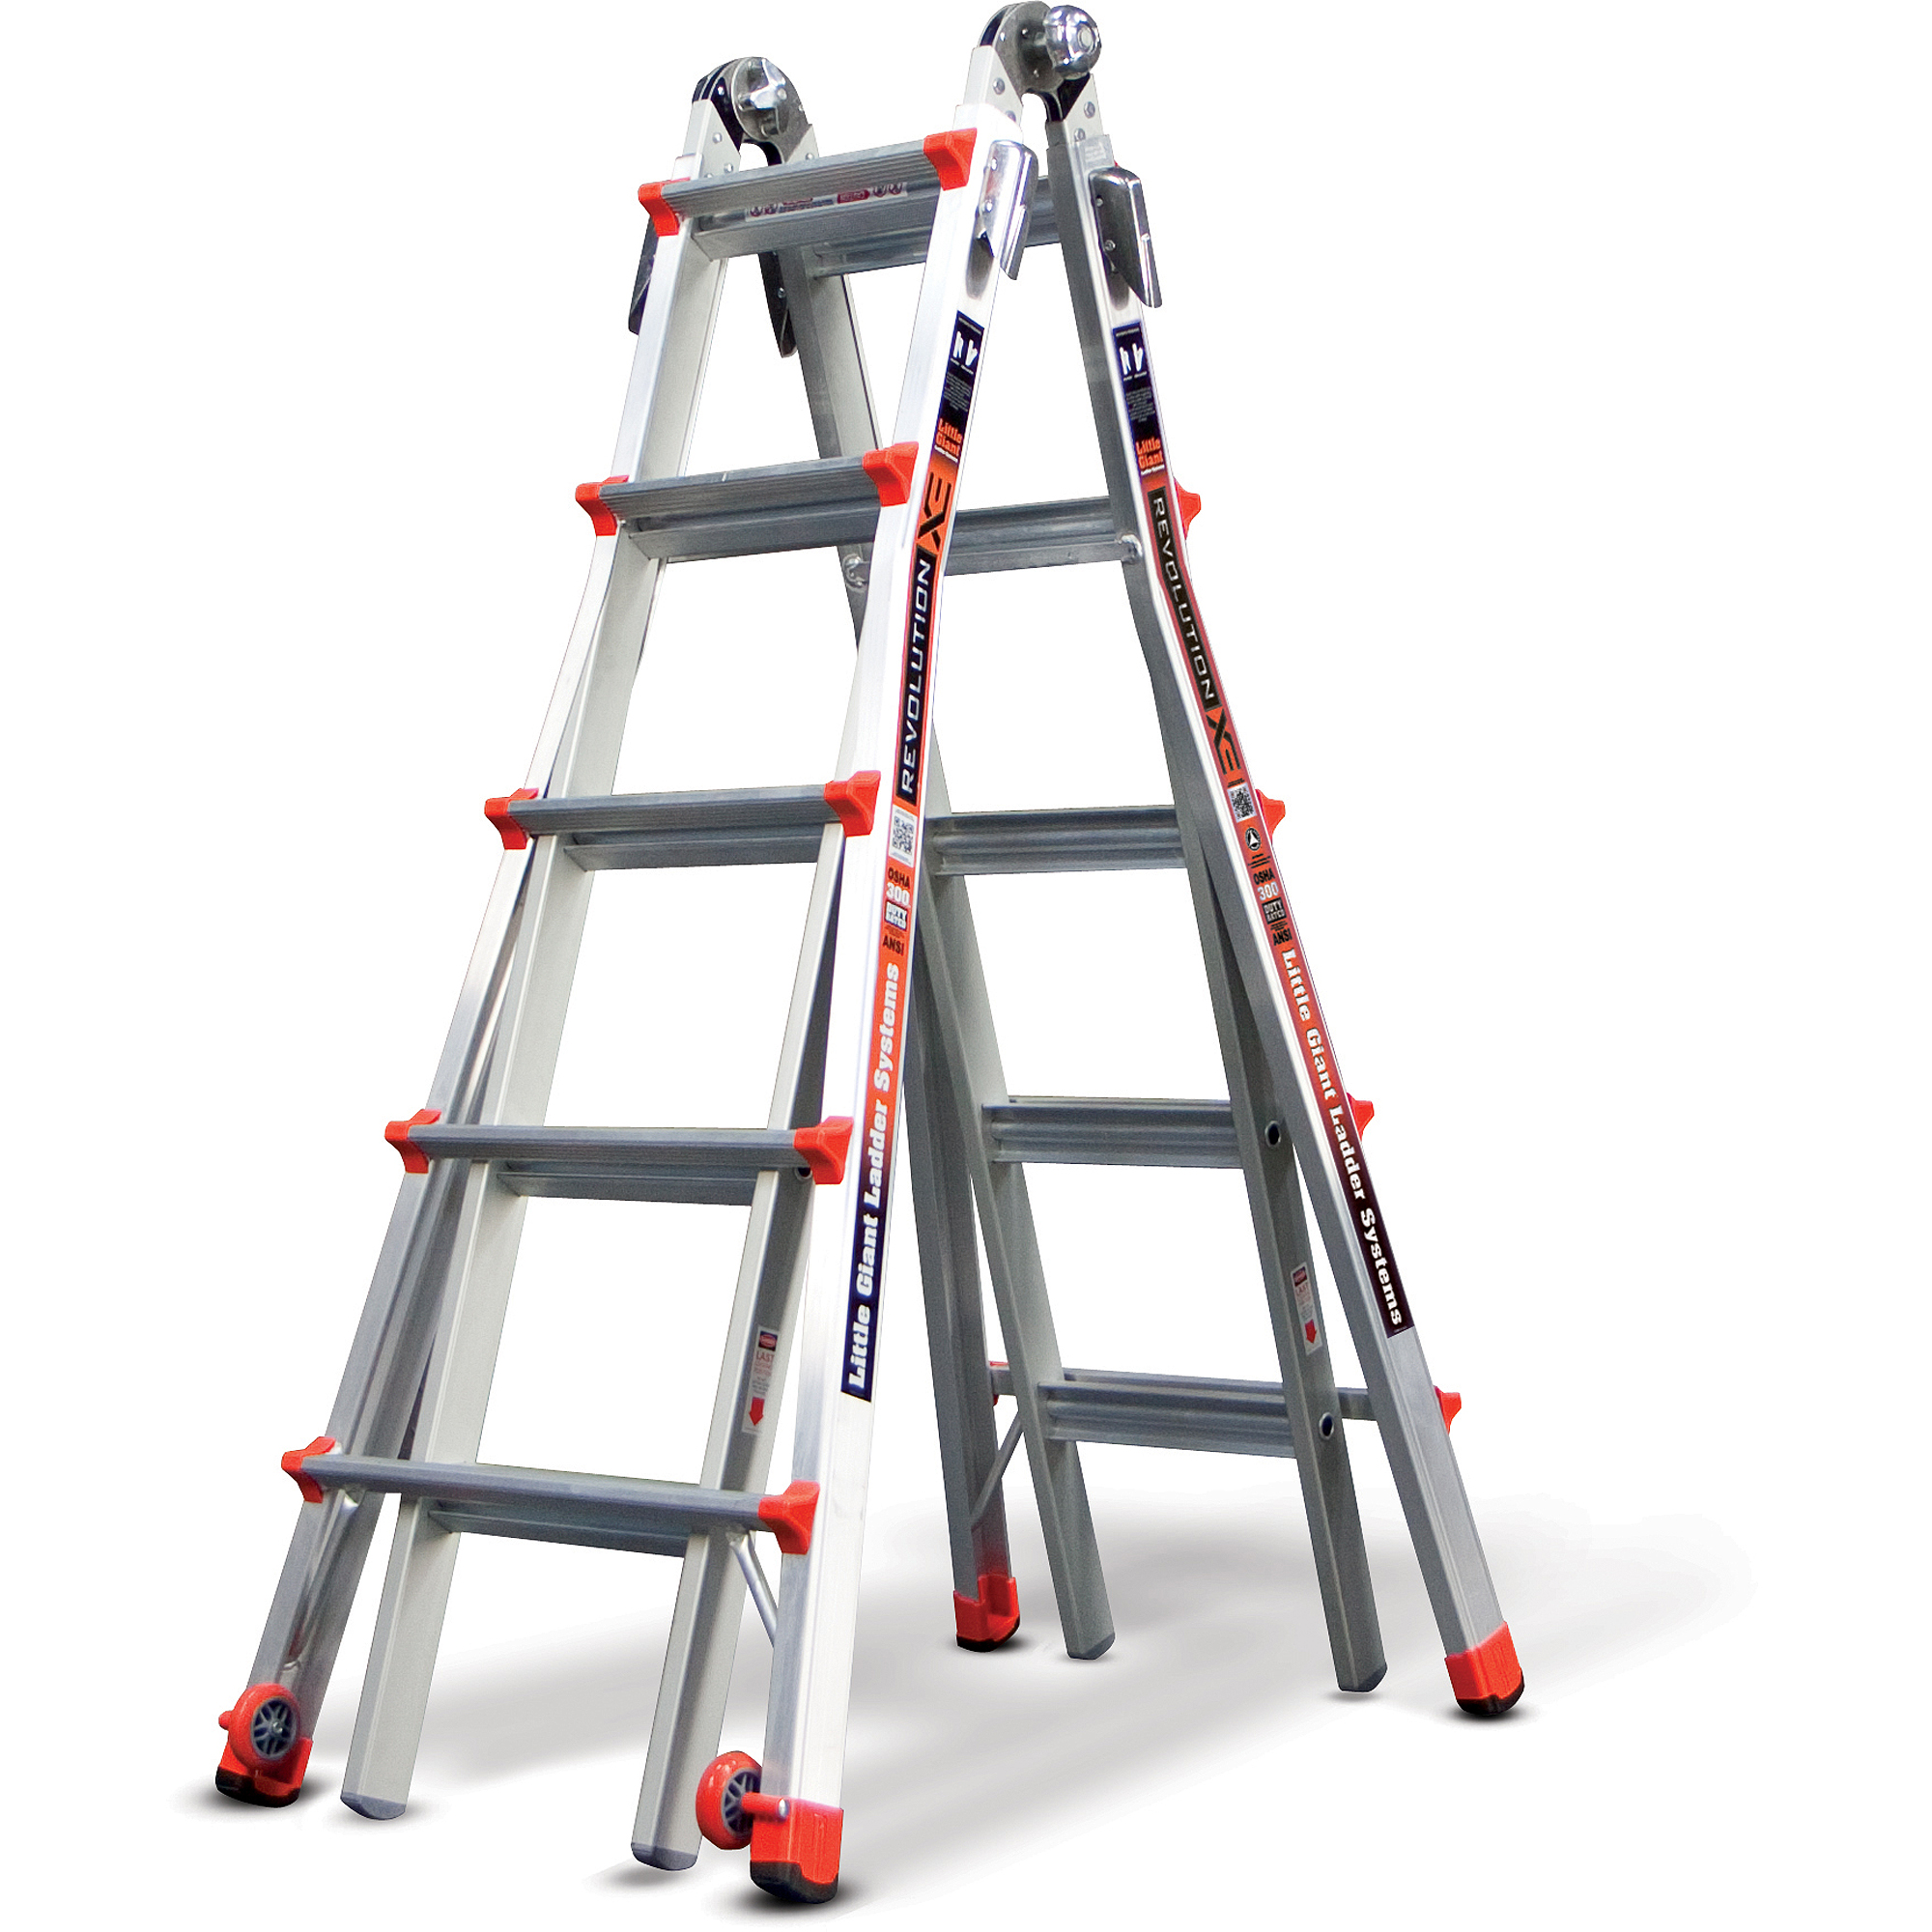 Little Giant Revolution, Model 22 - Type IA - 300 lbs rated, aluminum articulating ladder with trestle brackets